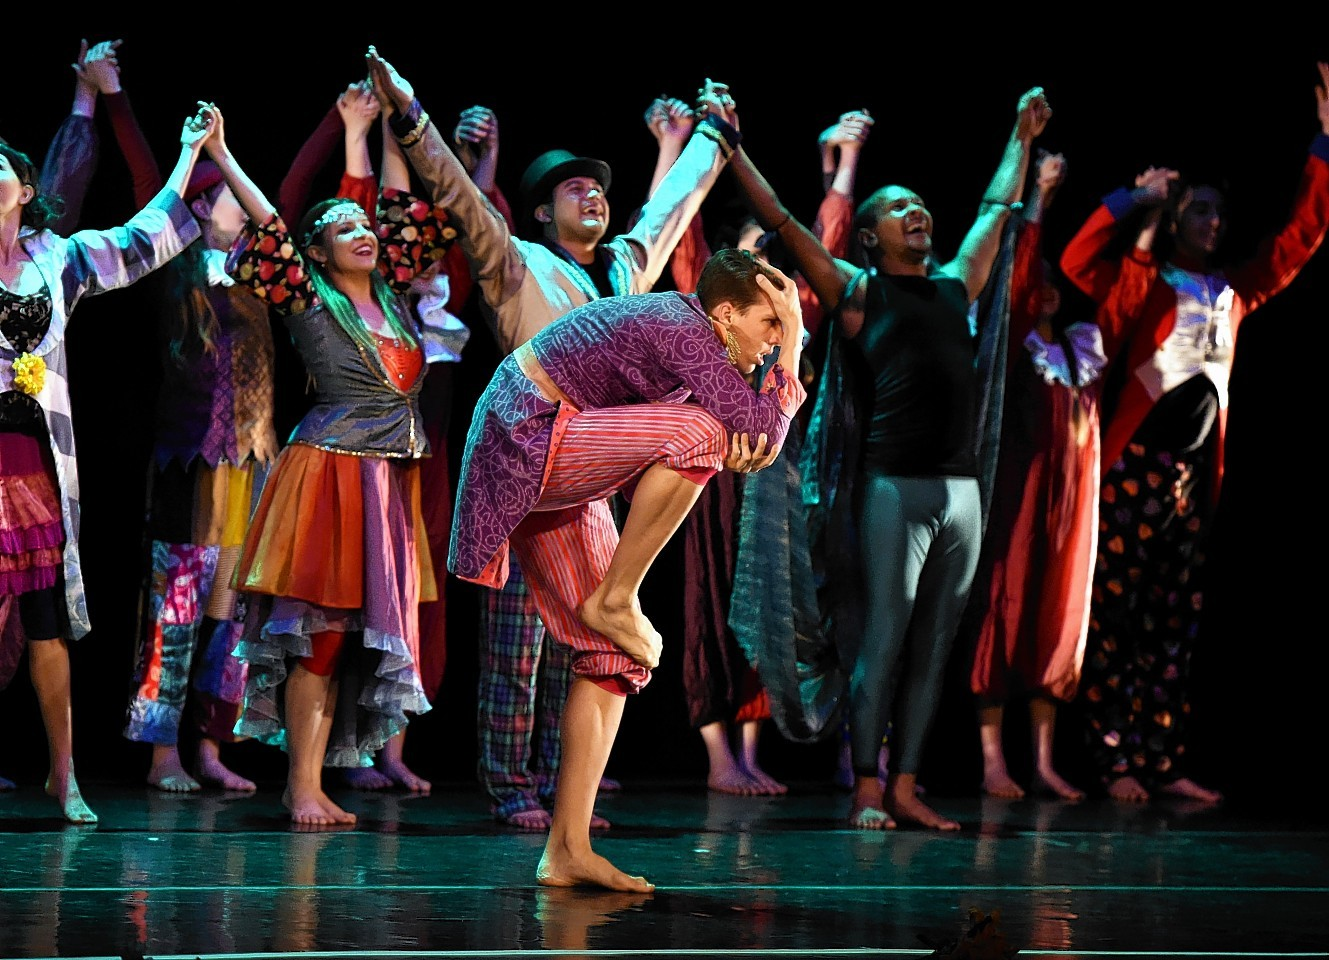 Ulysses Dance Company performing an excerpt from A Midsummer Night's Dream